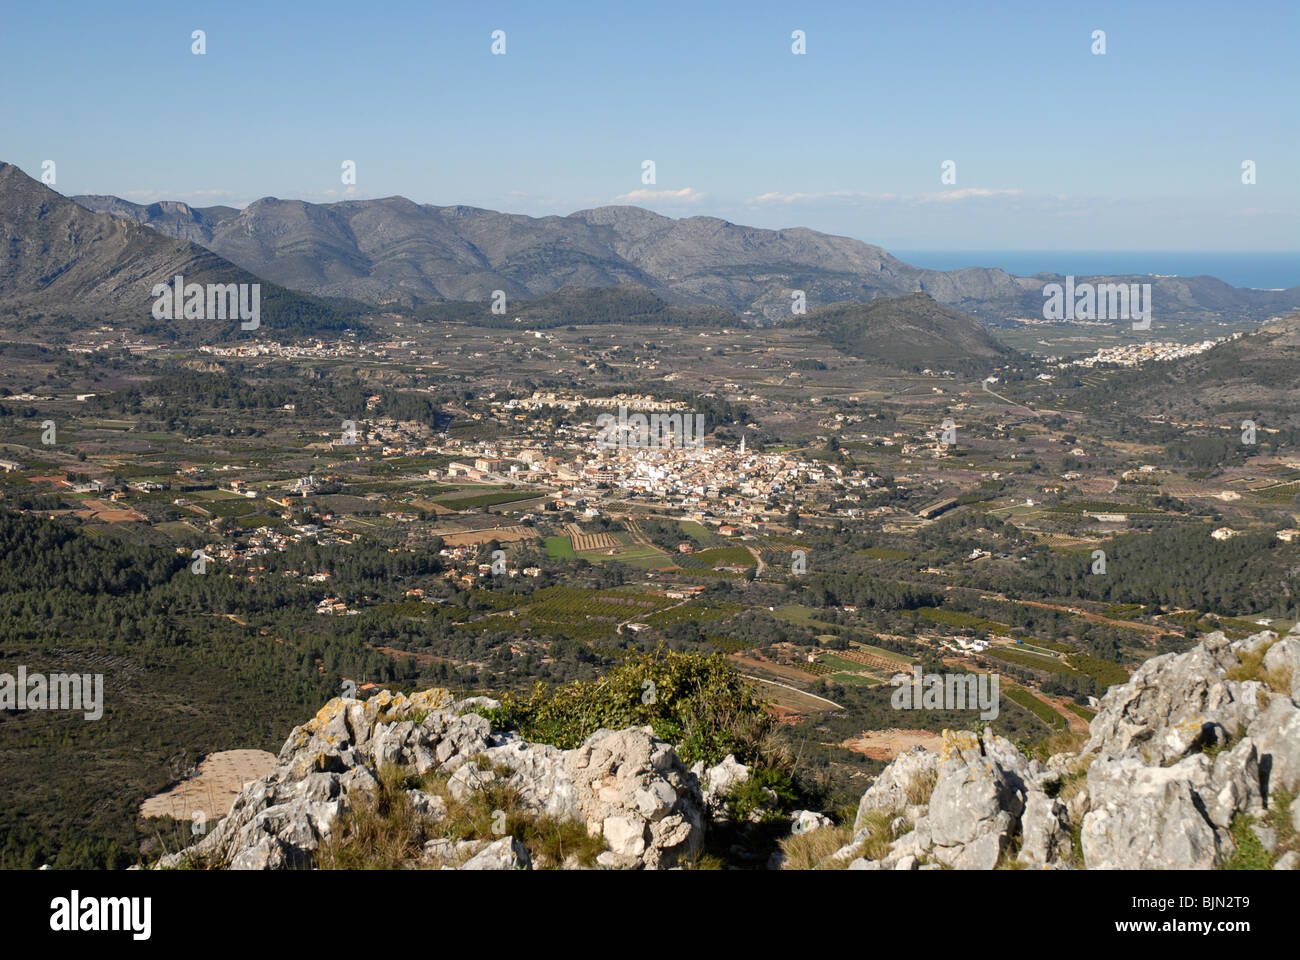 view over the Jalon Valley towards the coast, Alicante Province, Comunidad Valenciana, Spain - Stock Image